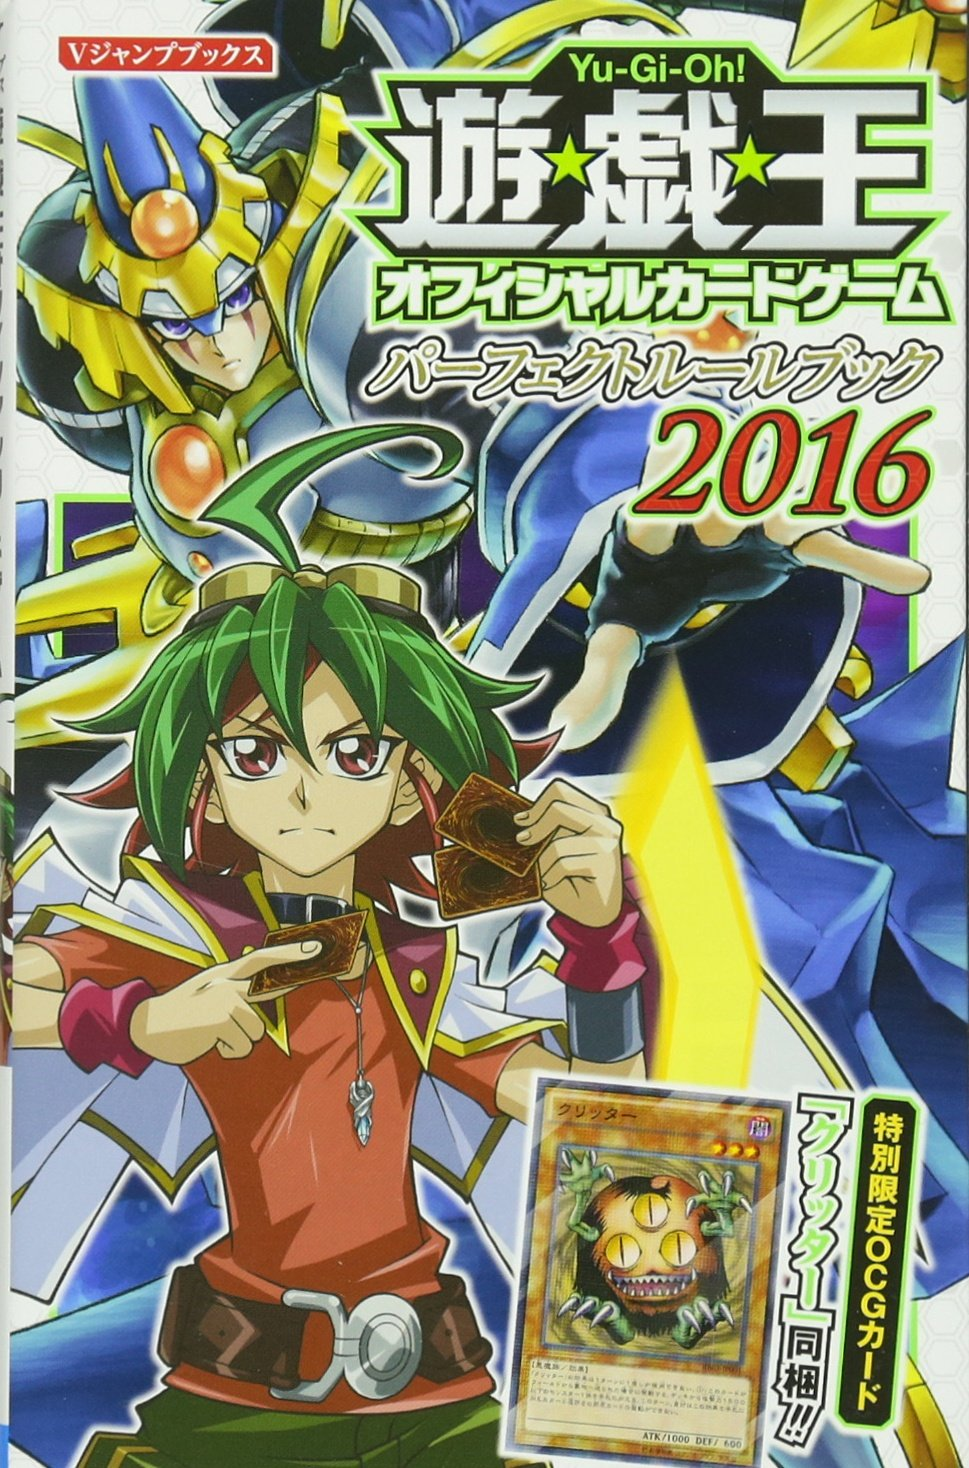 Download Cruise-Academy-King OCG perfect rule book 2016 (V goes Platinum.) pdf epub